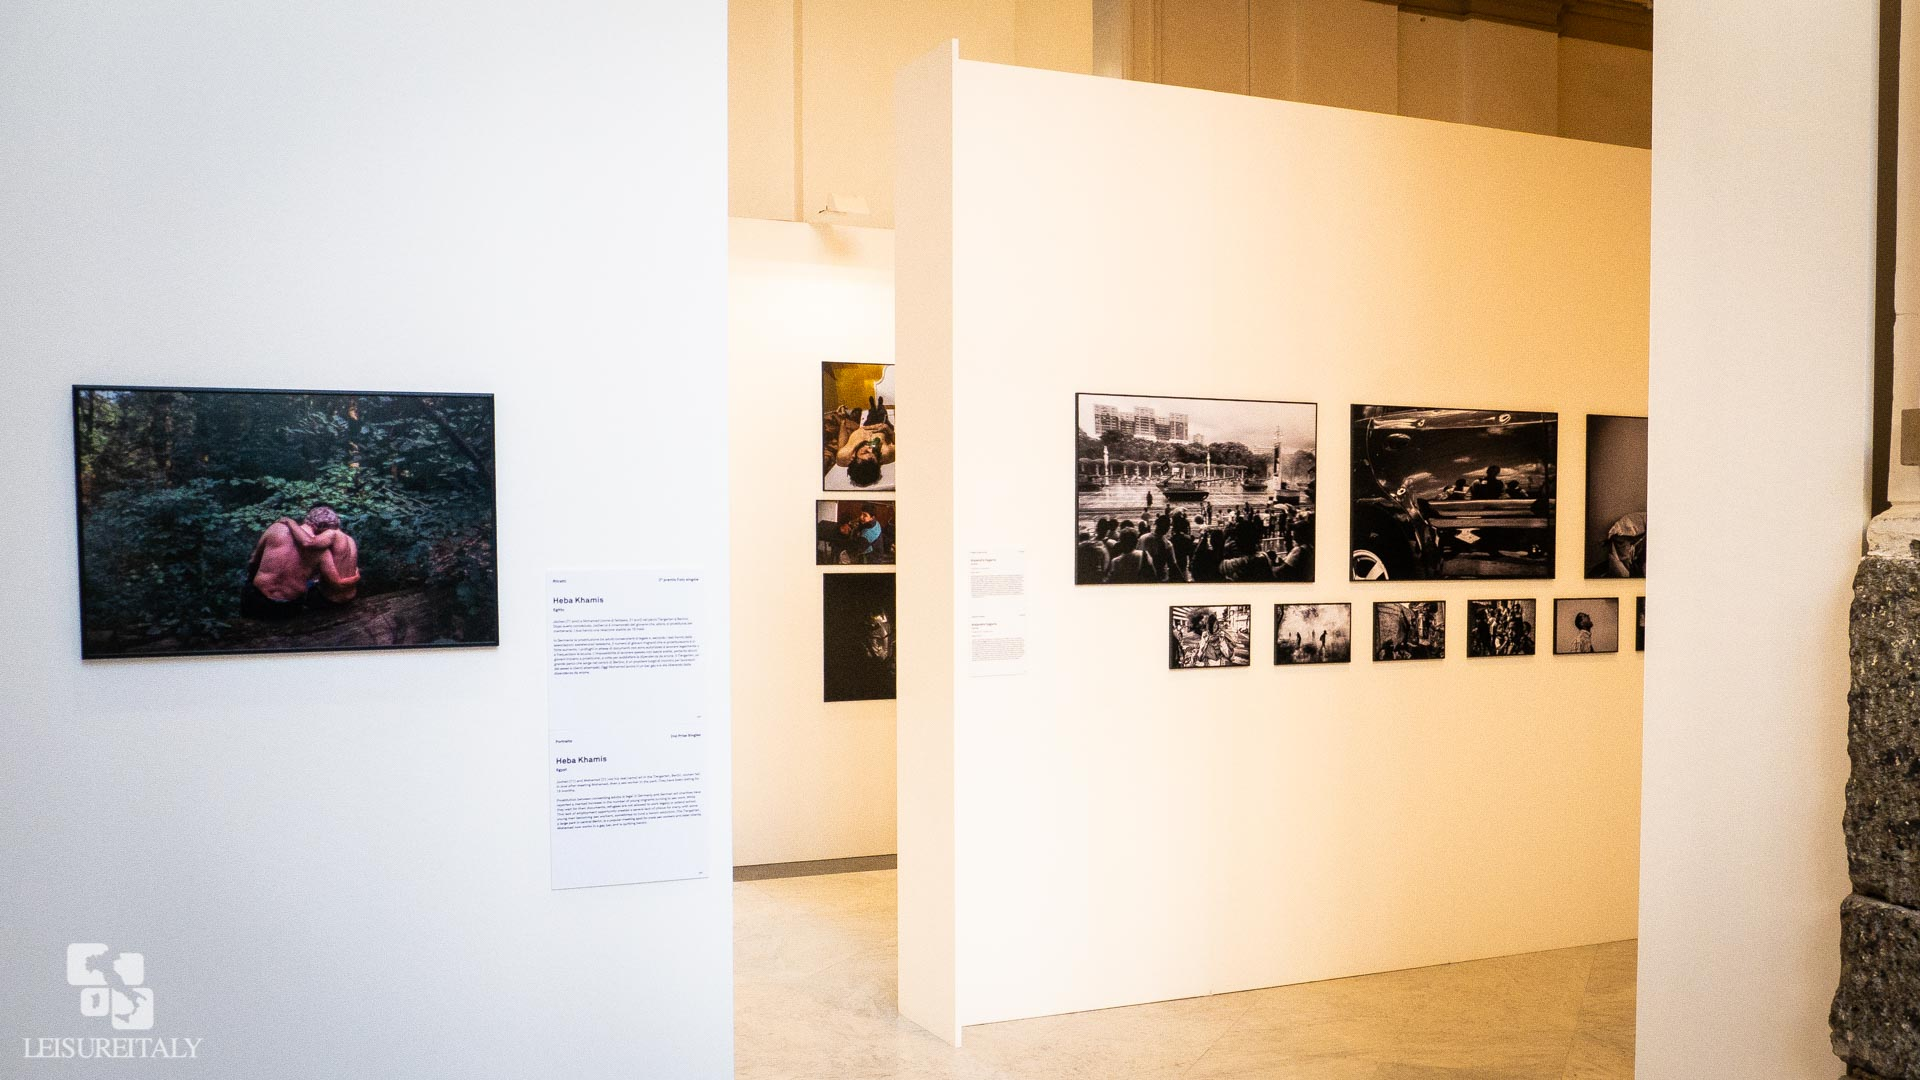 World Press Photo Exhibition - Some of the photos